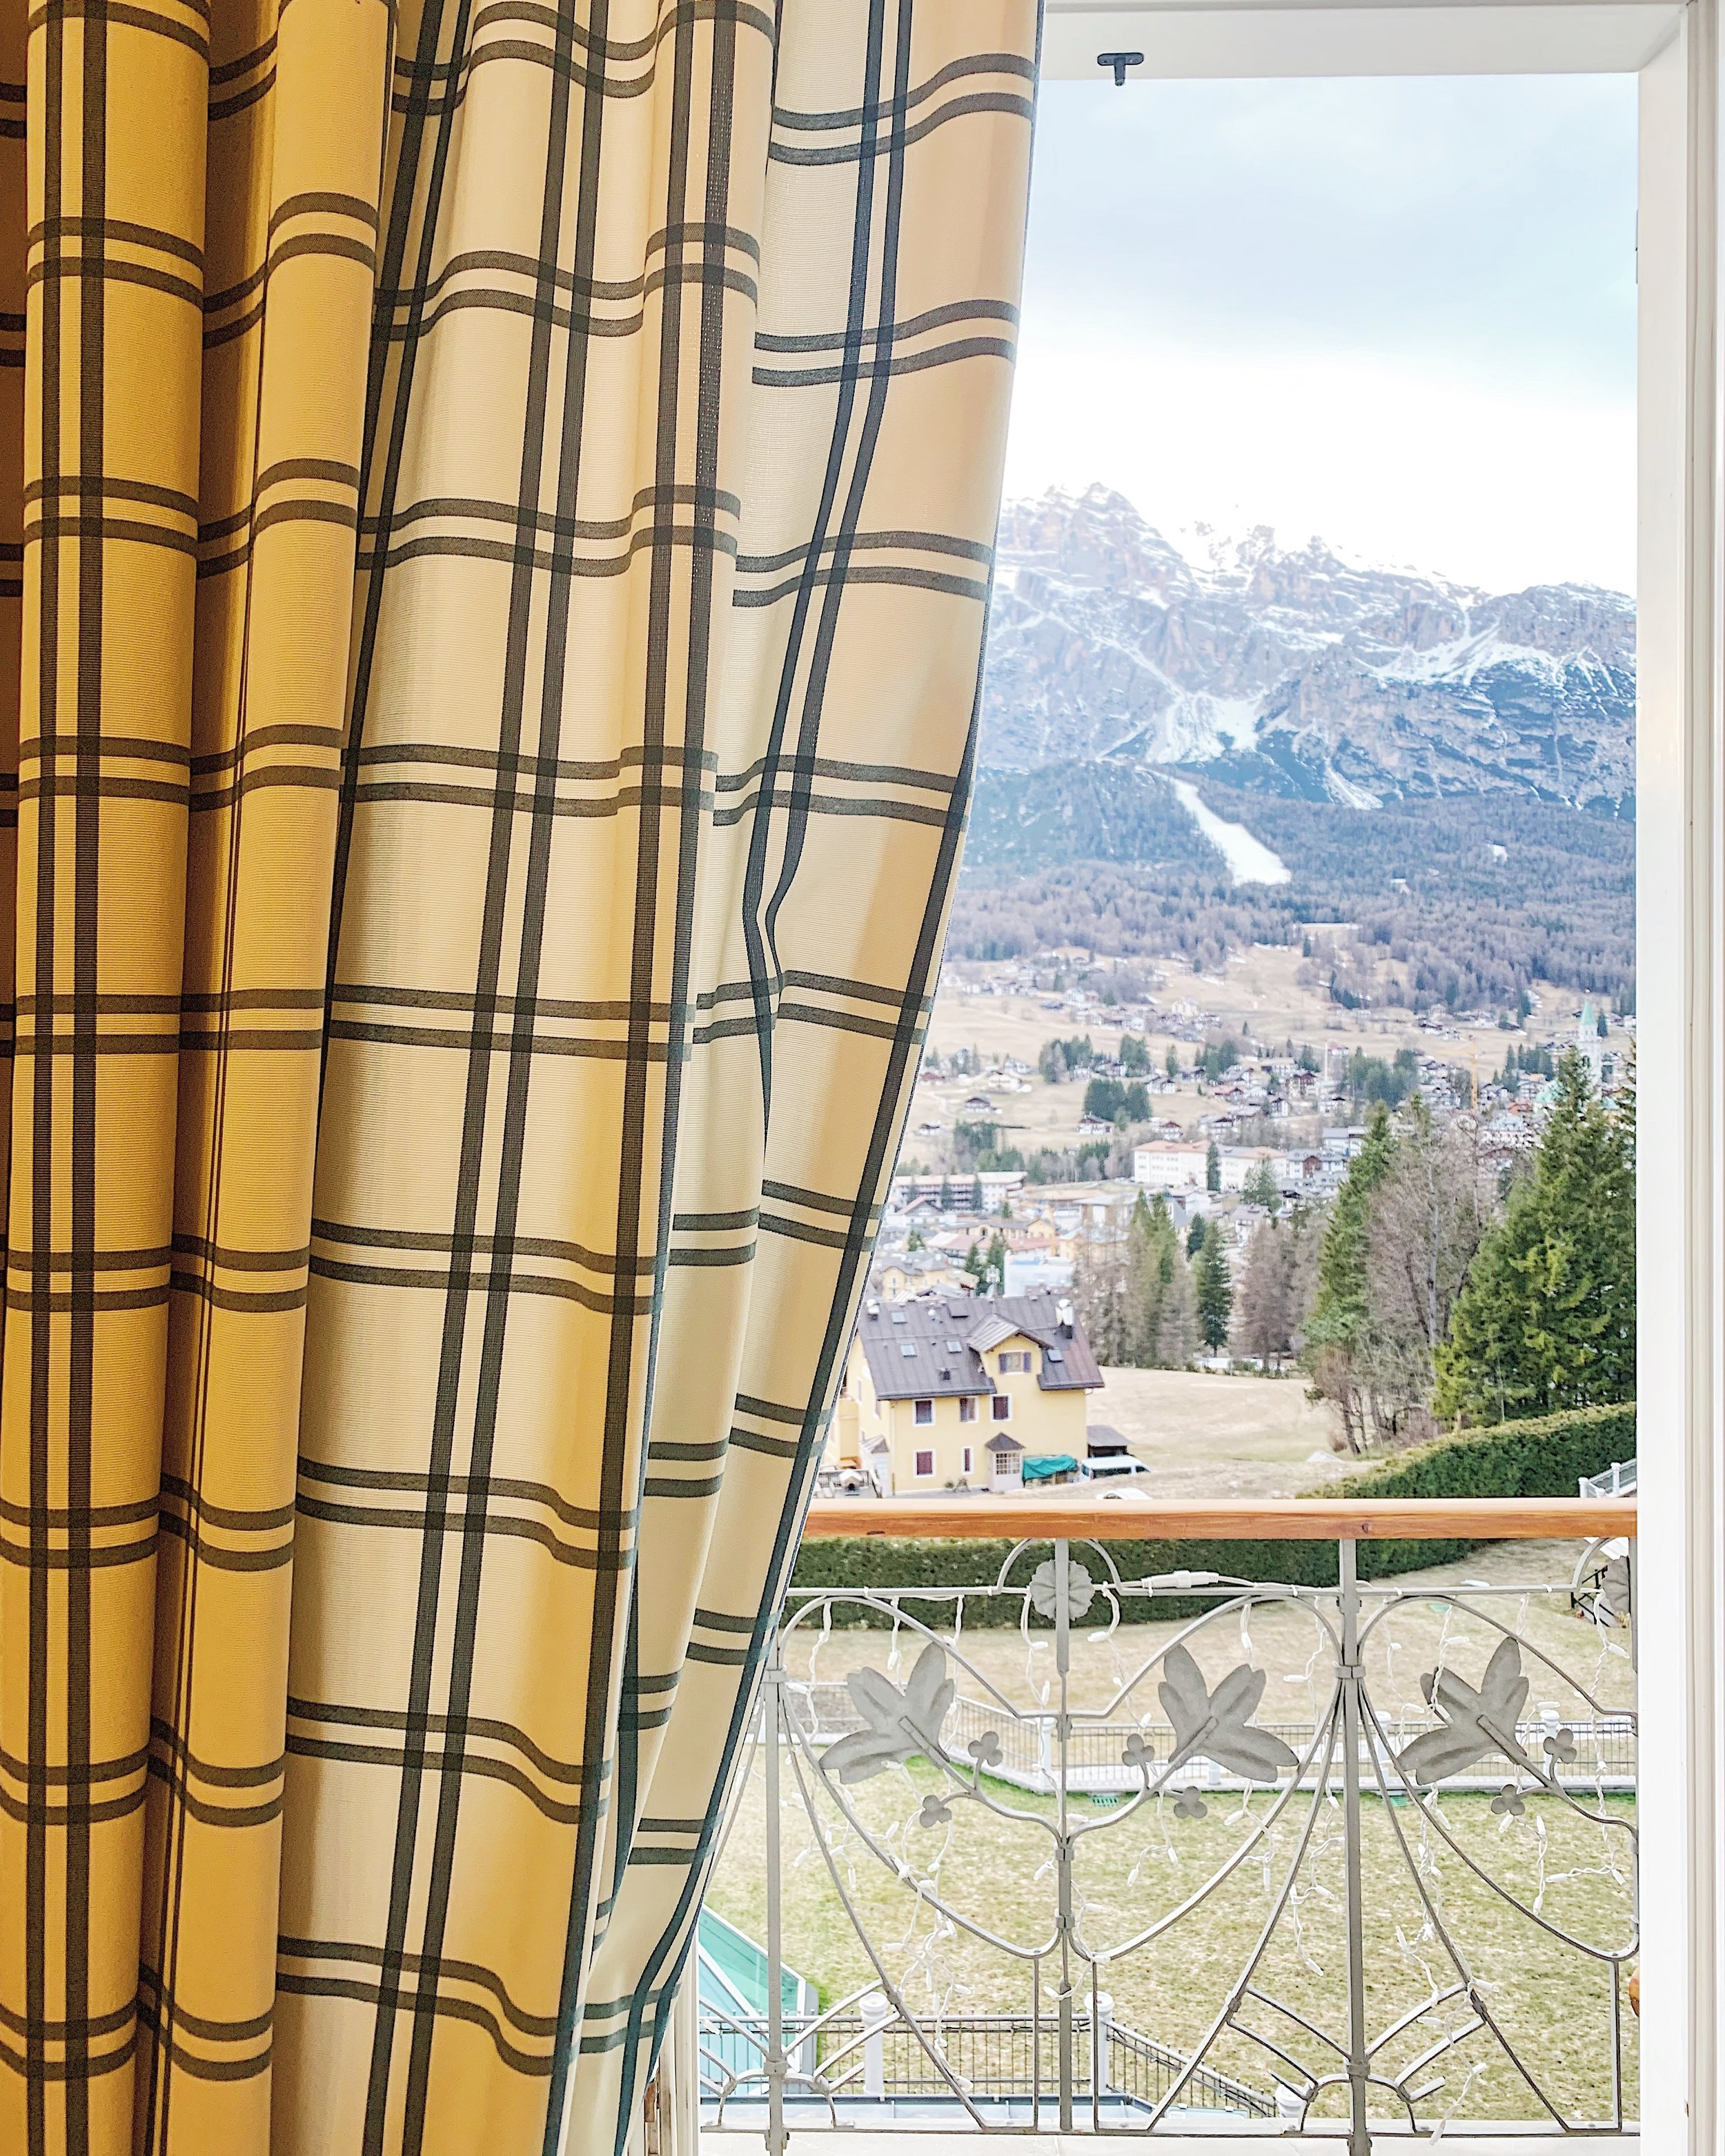 Mountain views from Cristallo Resort & Spa.